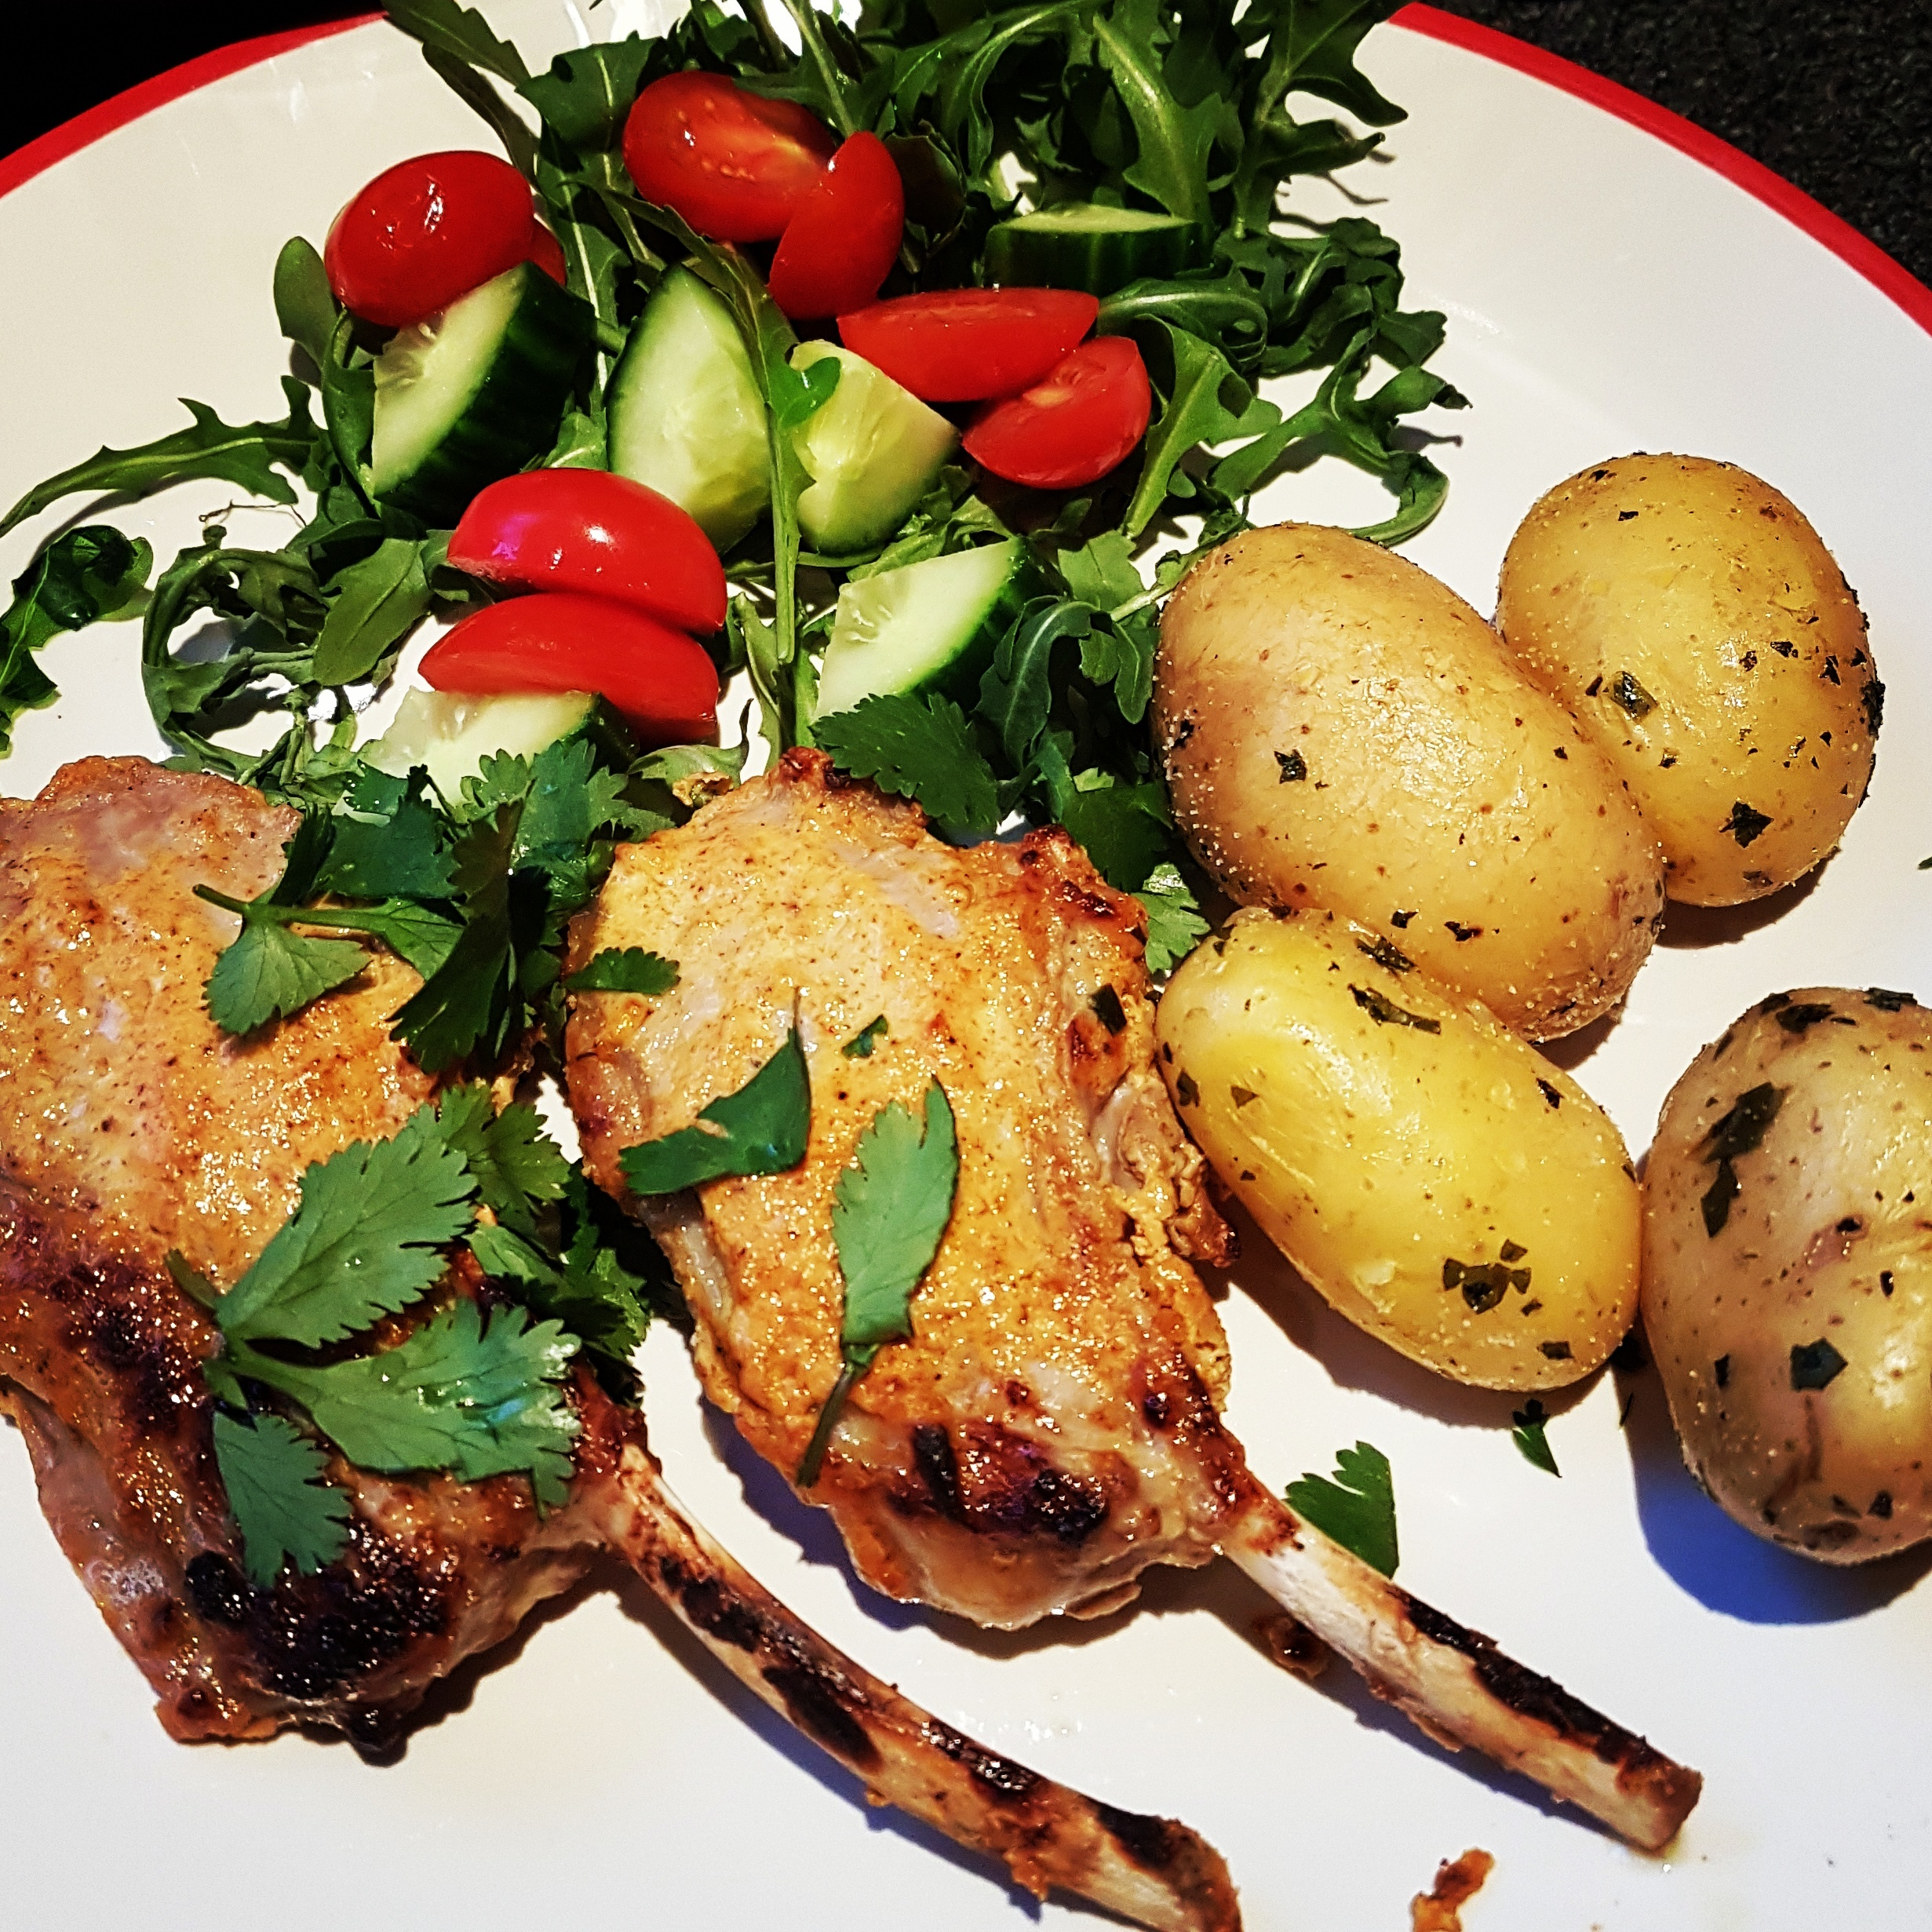 Things I have been cooking lately #153: Spiced lamb cutlets with salad and new potatoes